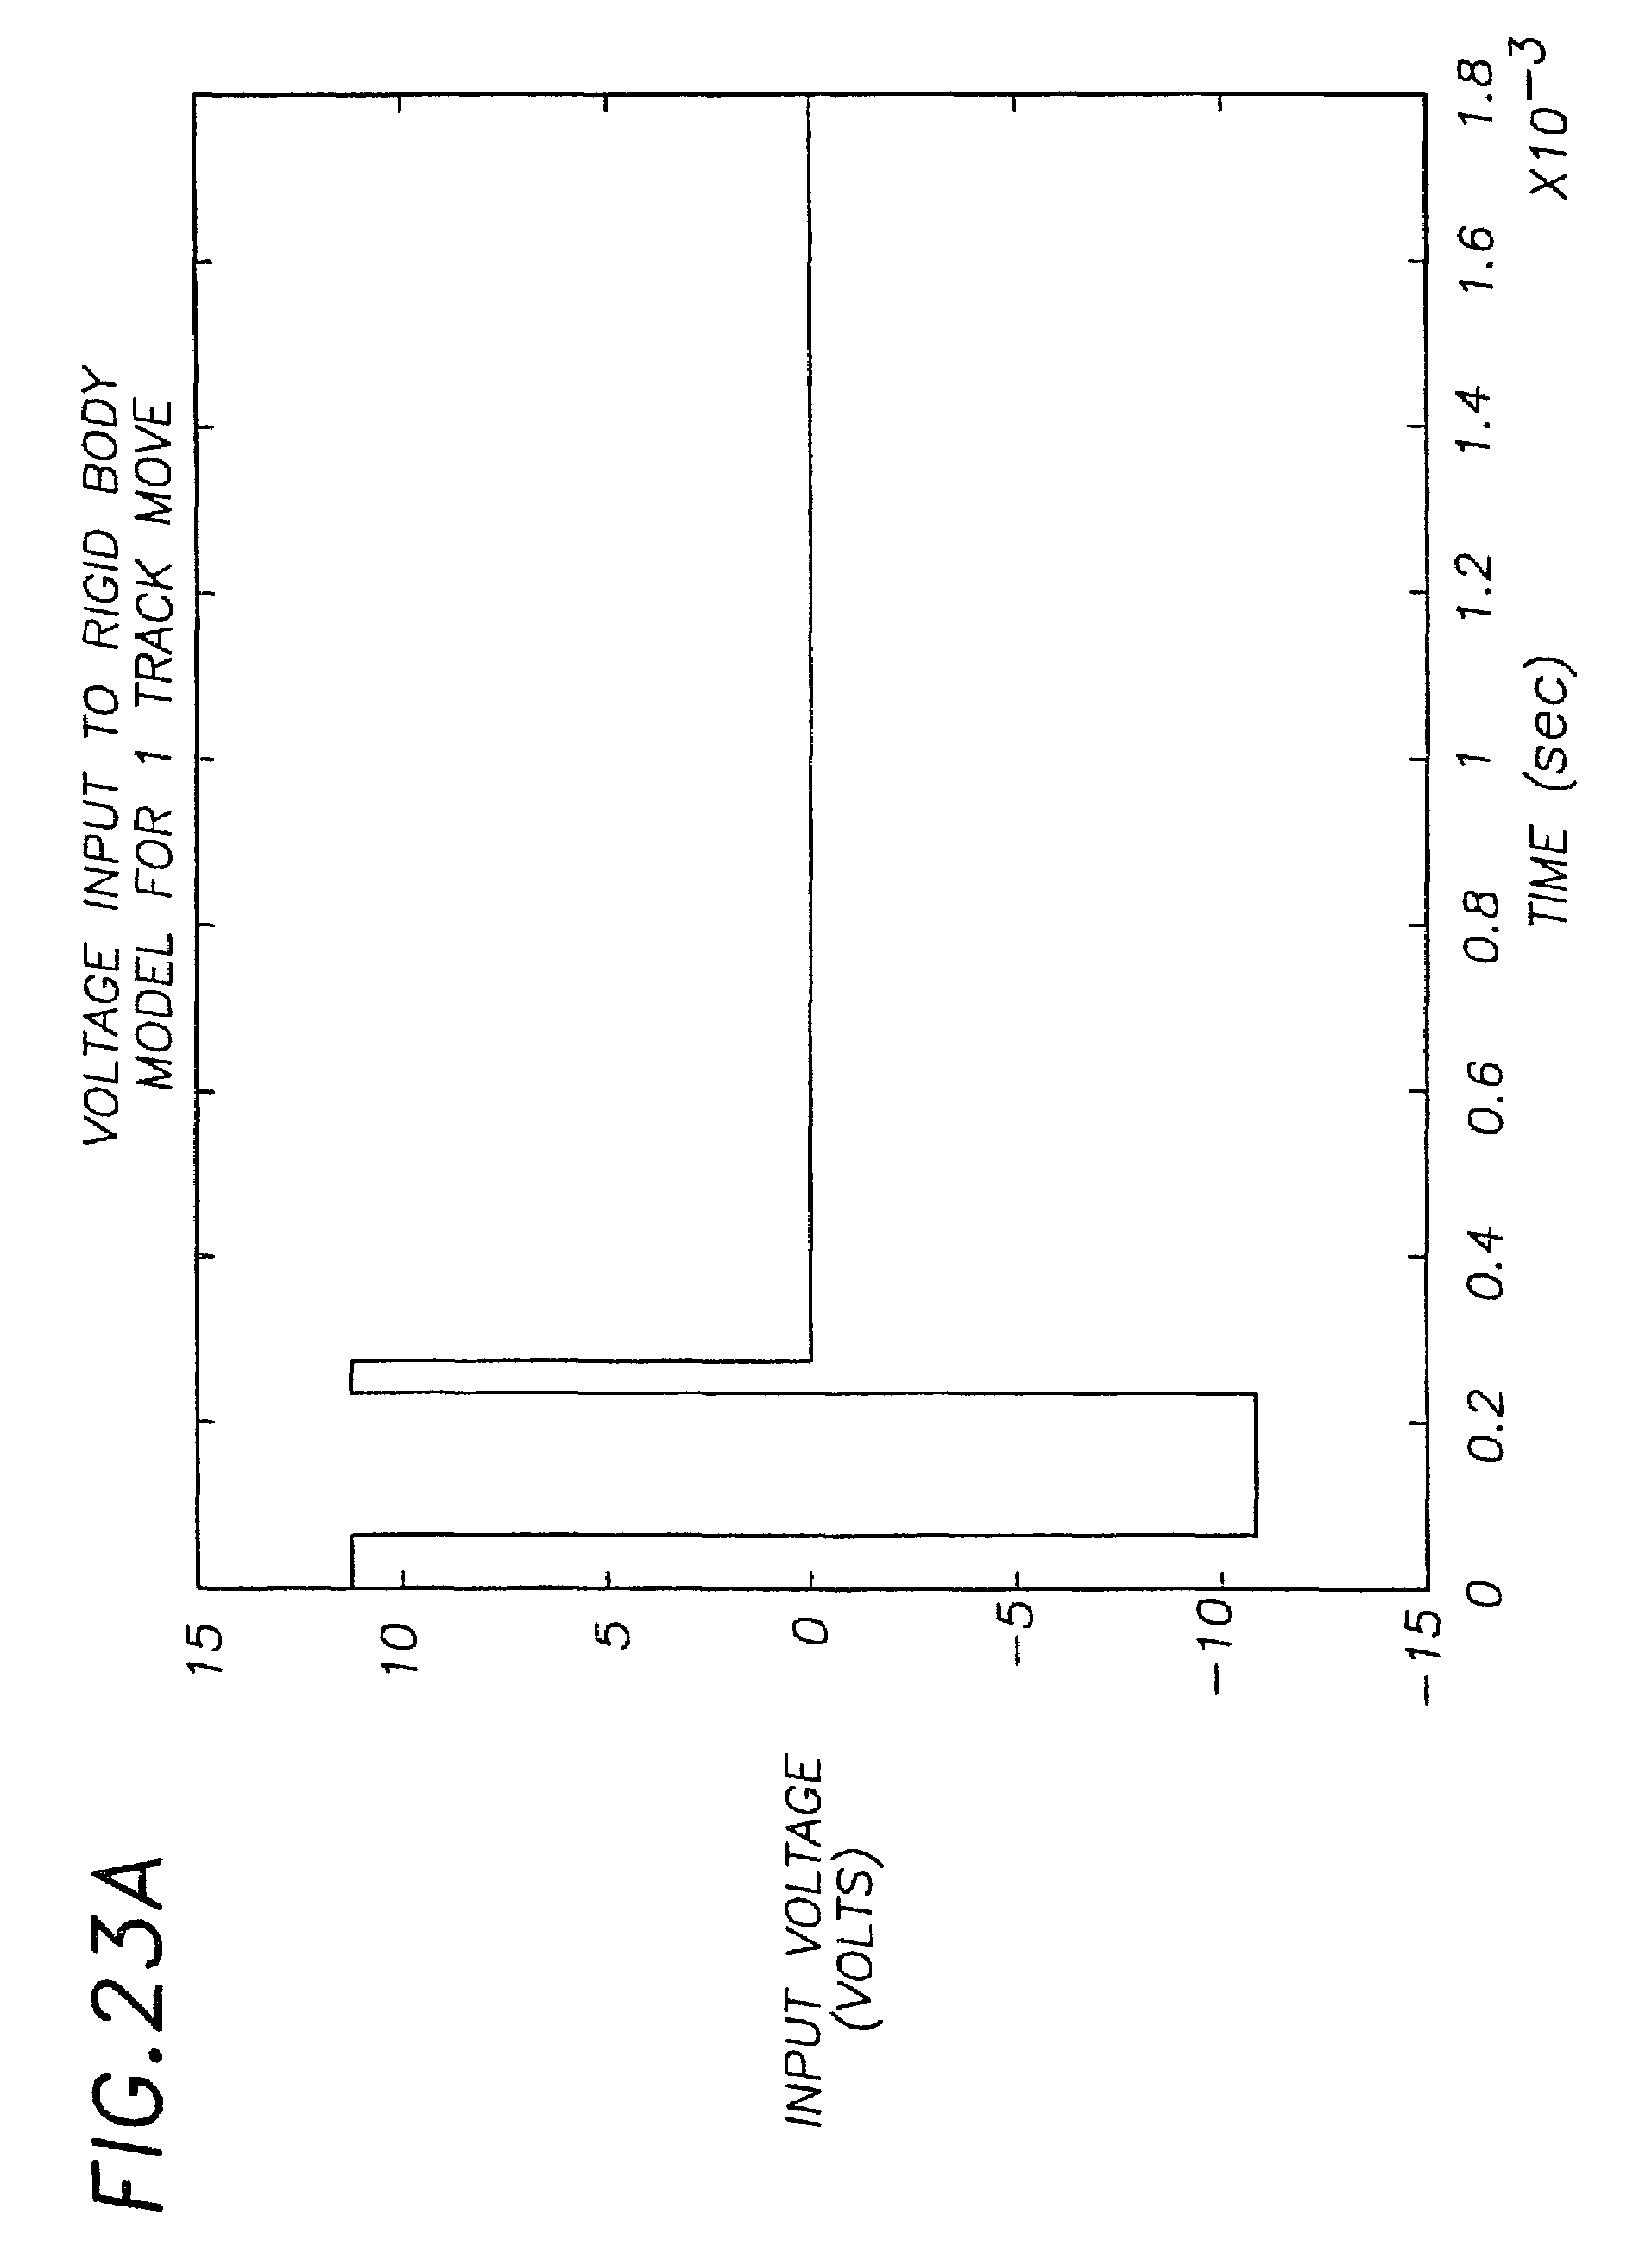 modified multifactor productivity appro Estimation and analysis of multifactor productivity in truck transportation: 1987-2003 anthony d apostolides, phd february 2009 us department of transportation.